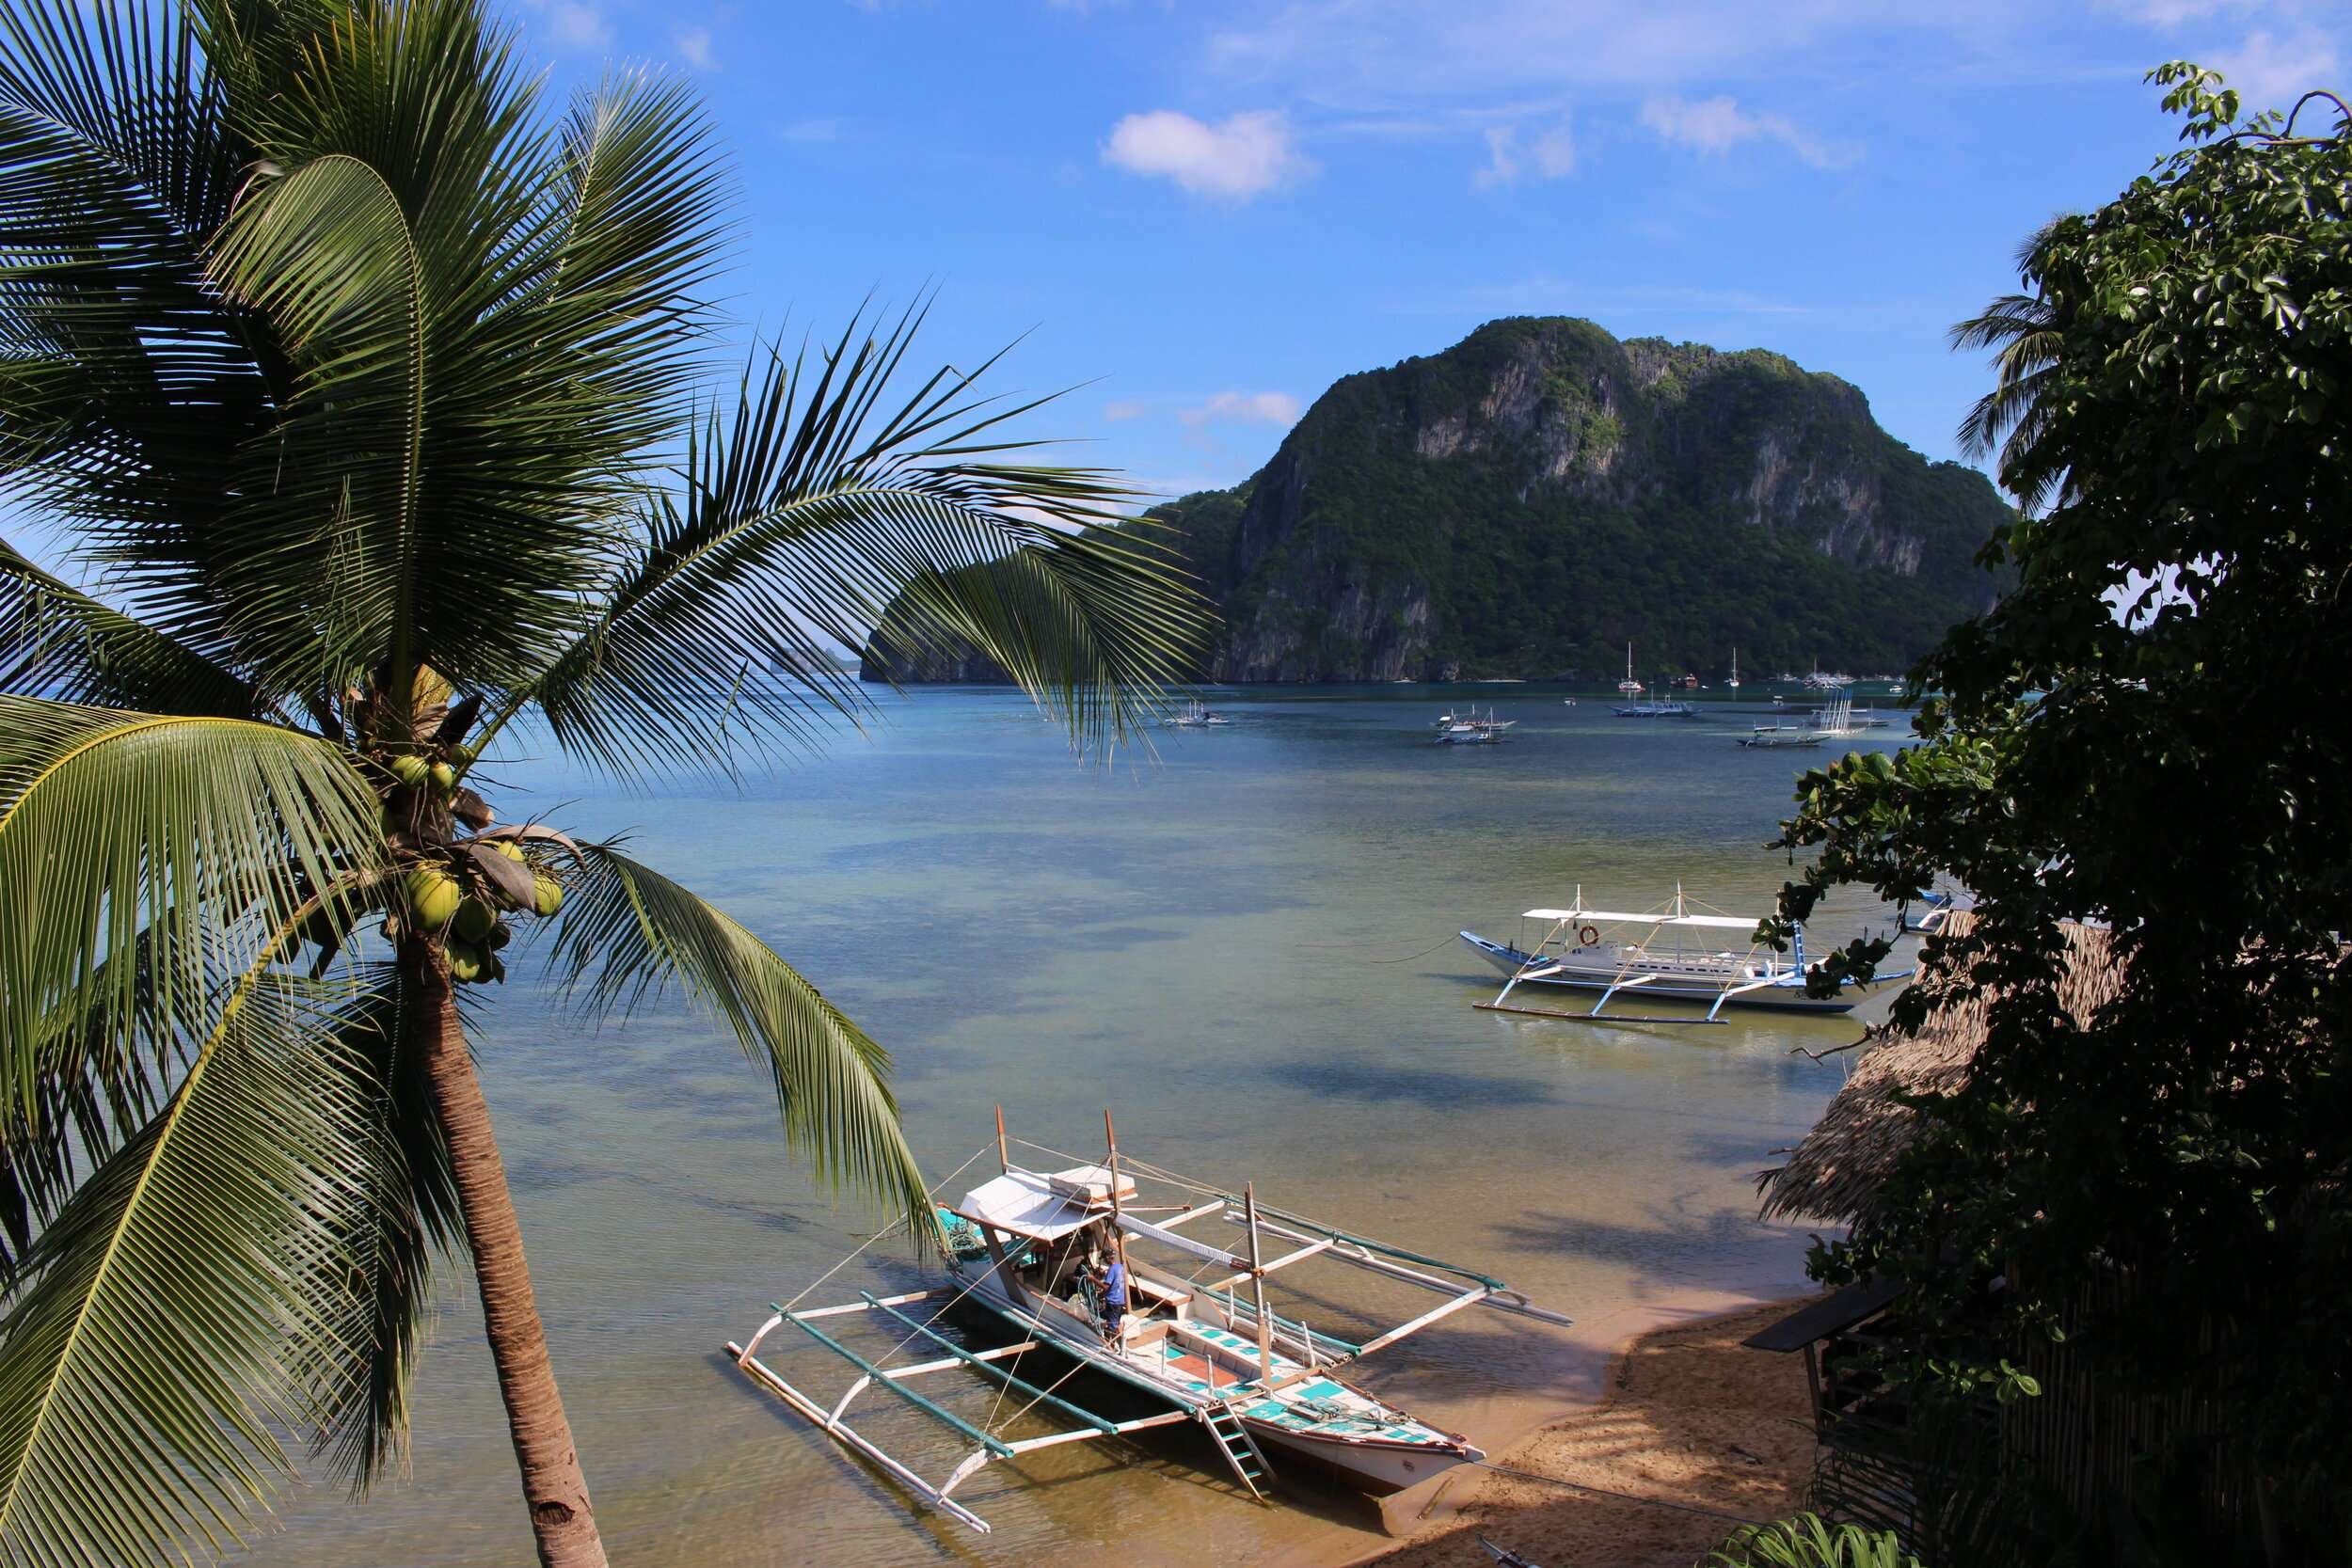 Beach in El Nido at Frangipani Hotel in the Philippines